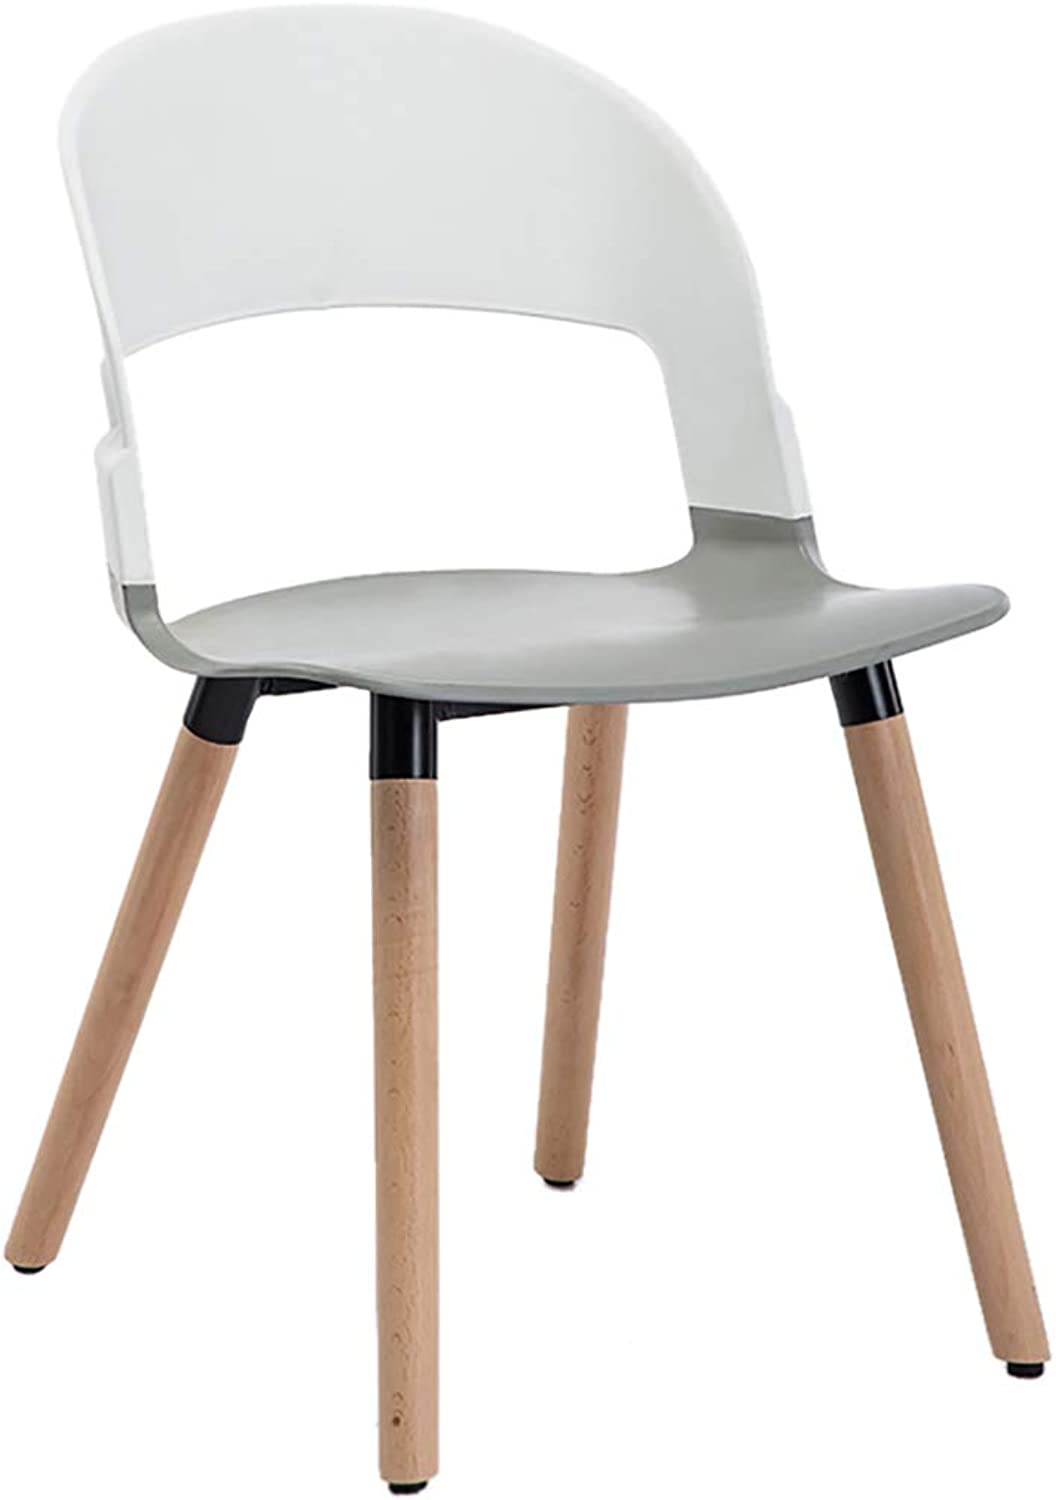 Nordic Creative Lounge Chair, Solid Wood Dining Chair, Curved Backrest with Ergonomic Design, Strong Load Capacity, for Restaurant Office Counter Family